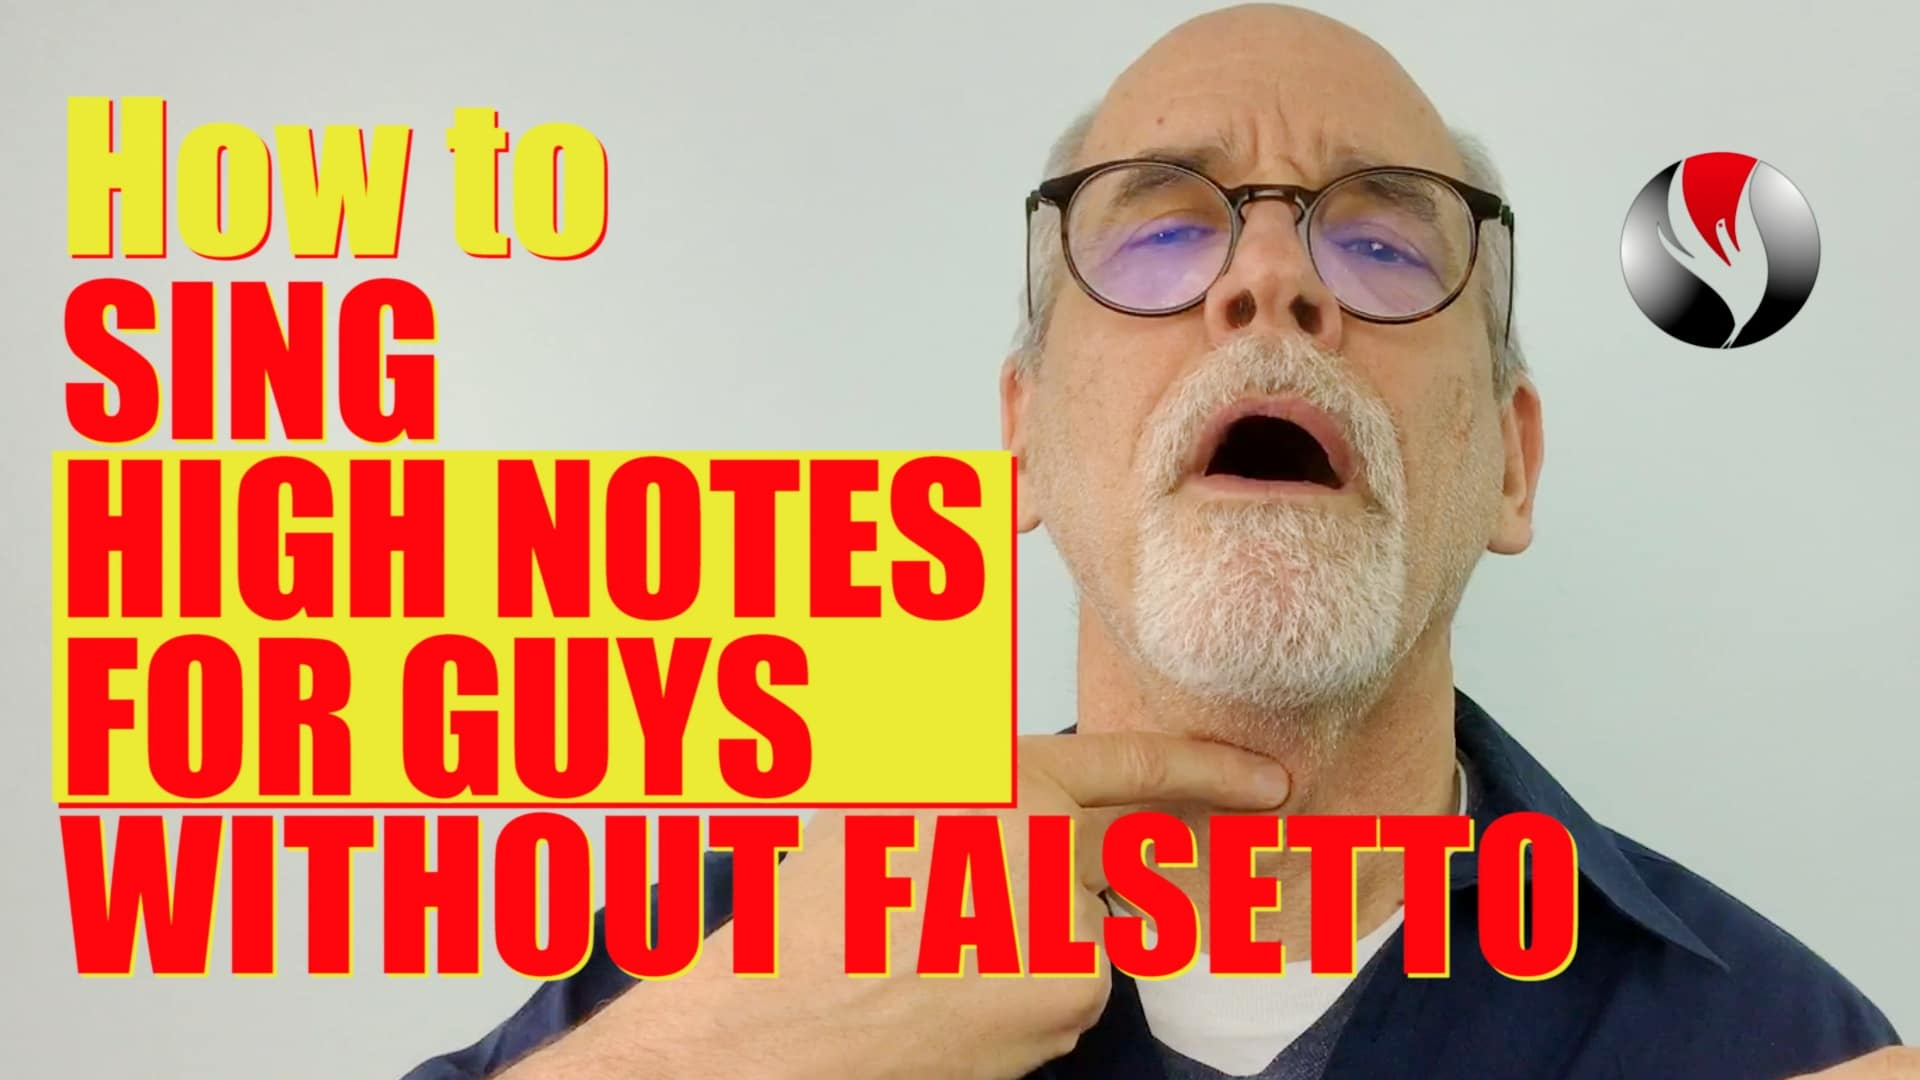 How To Sing High Notes For Guys Without Falsetto – 3 Exercises for Guys AND Girls